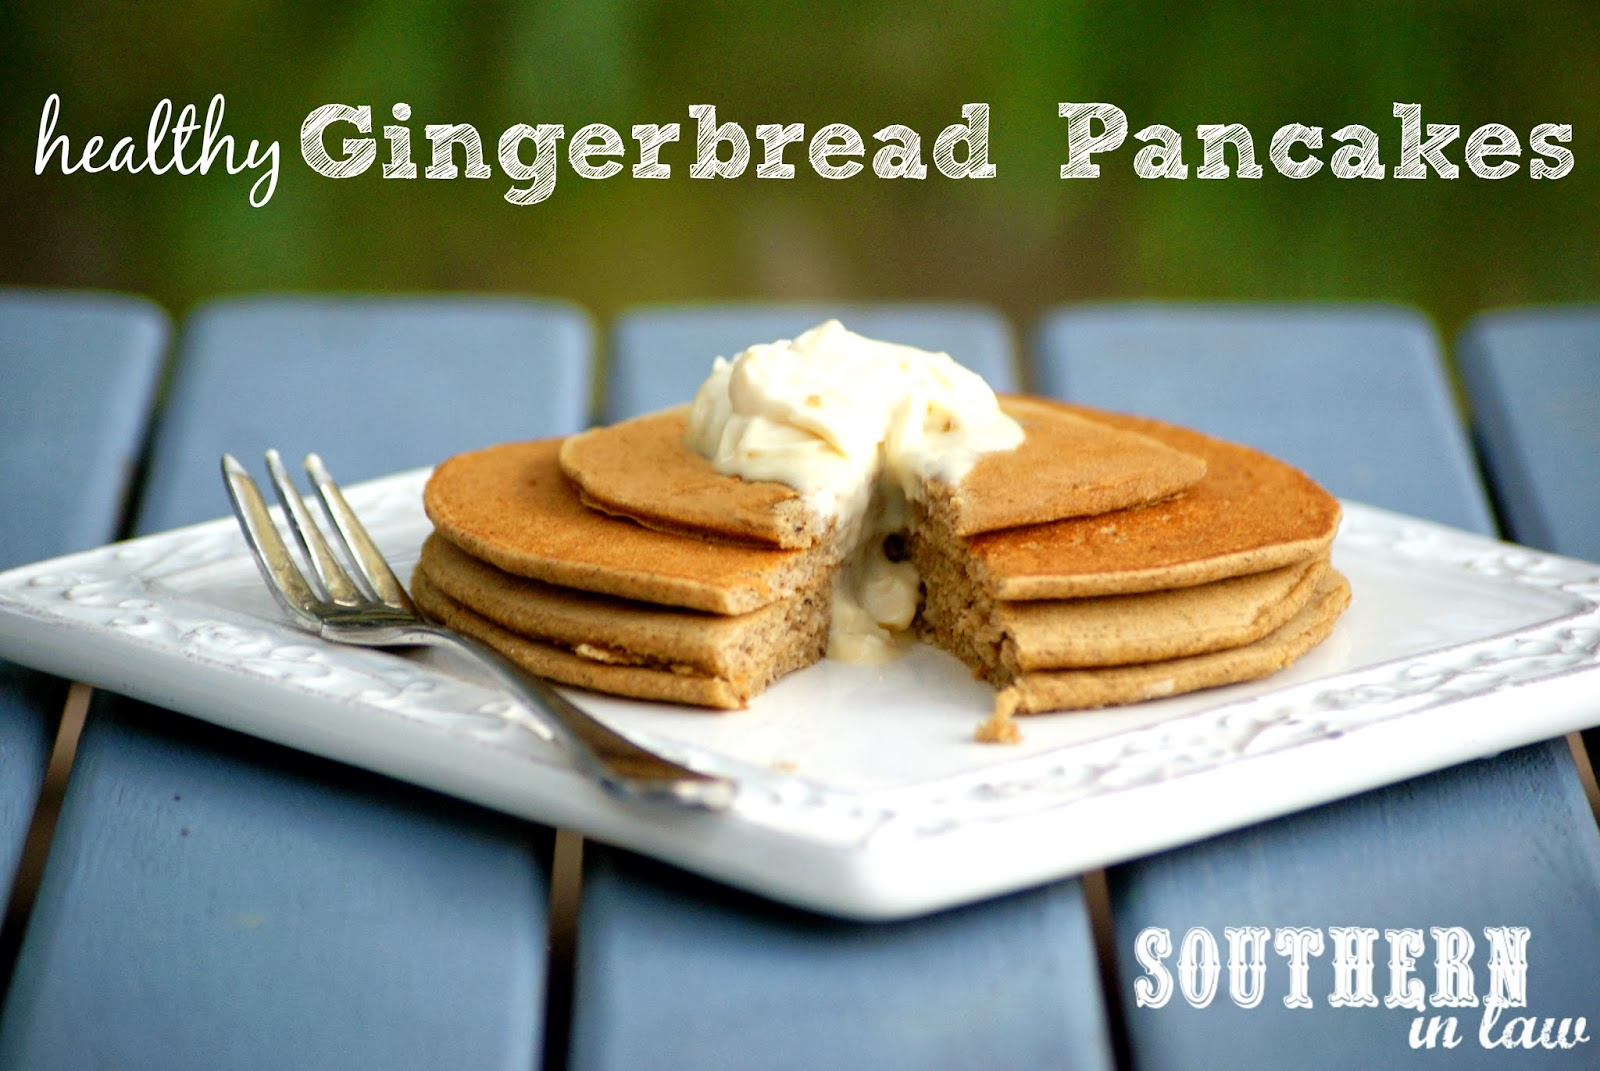 Healthy Gingerbread Buckwheat Pancakes Recipe - Gluten Free, Low Fat, Sugar Free